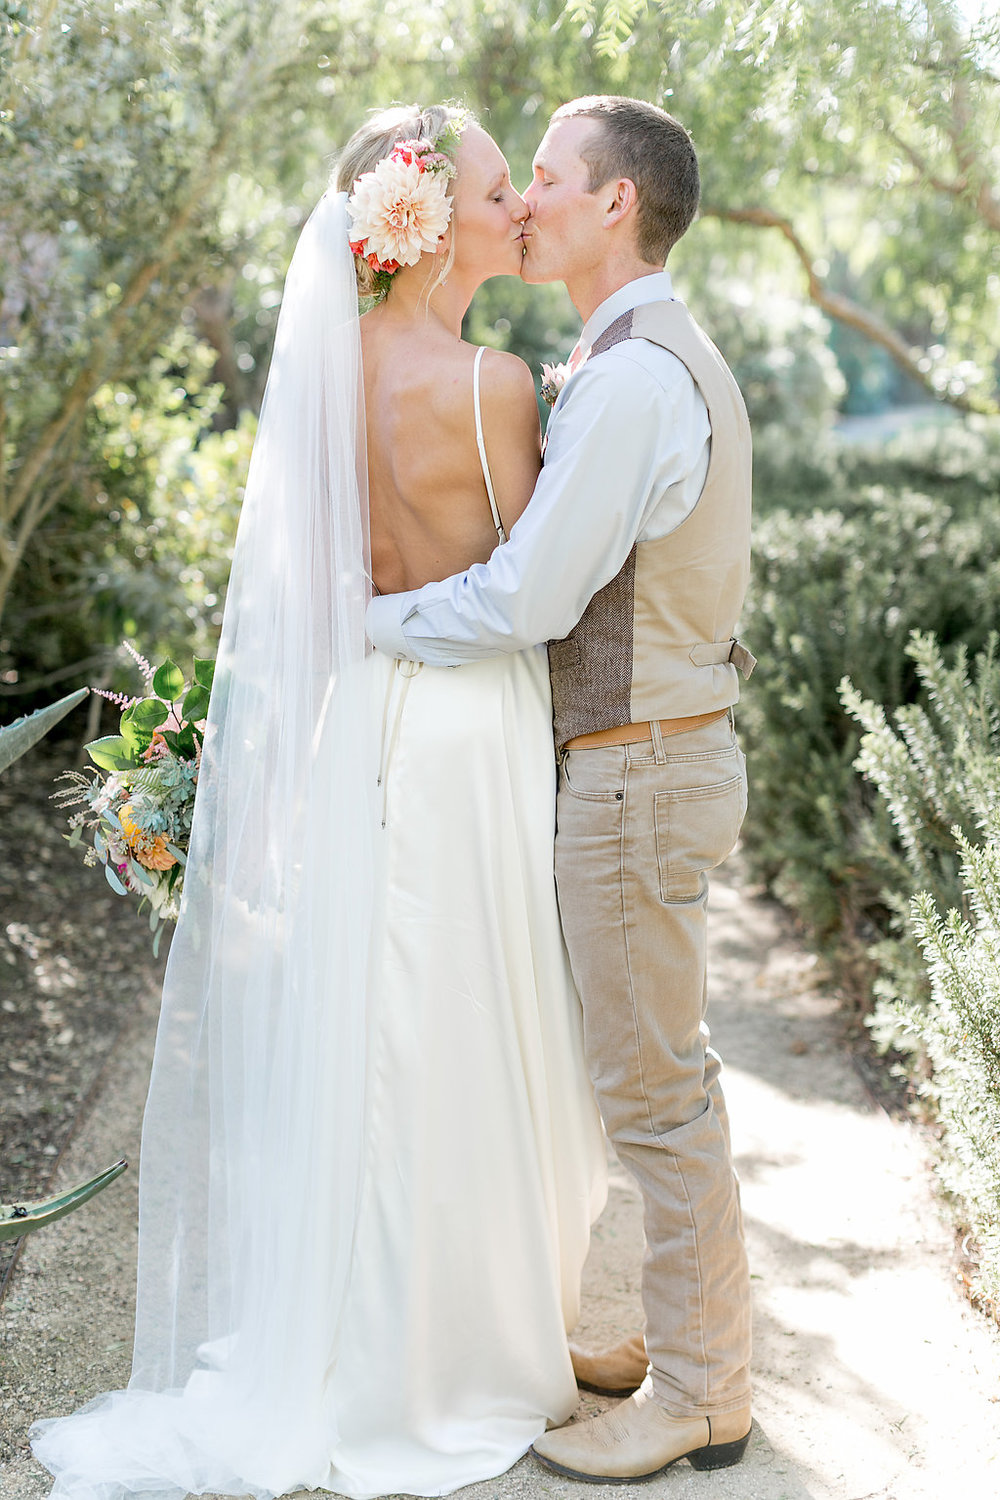 Desert bohemian wedding, cafe au lait hair flowers by Compass Floral | Estancia Hotel & Spa, La Jolla.